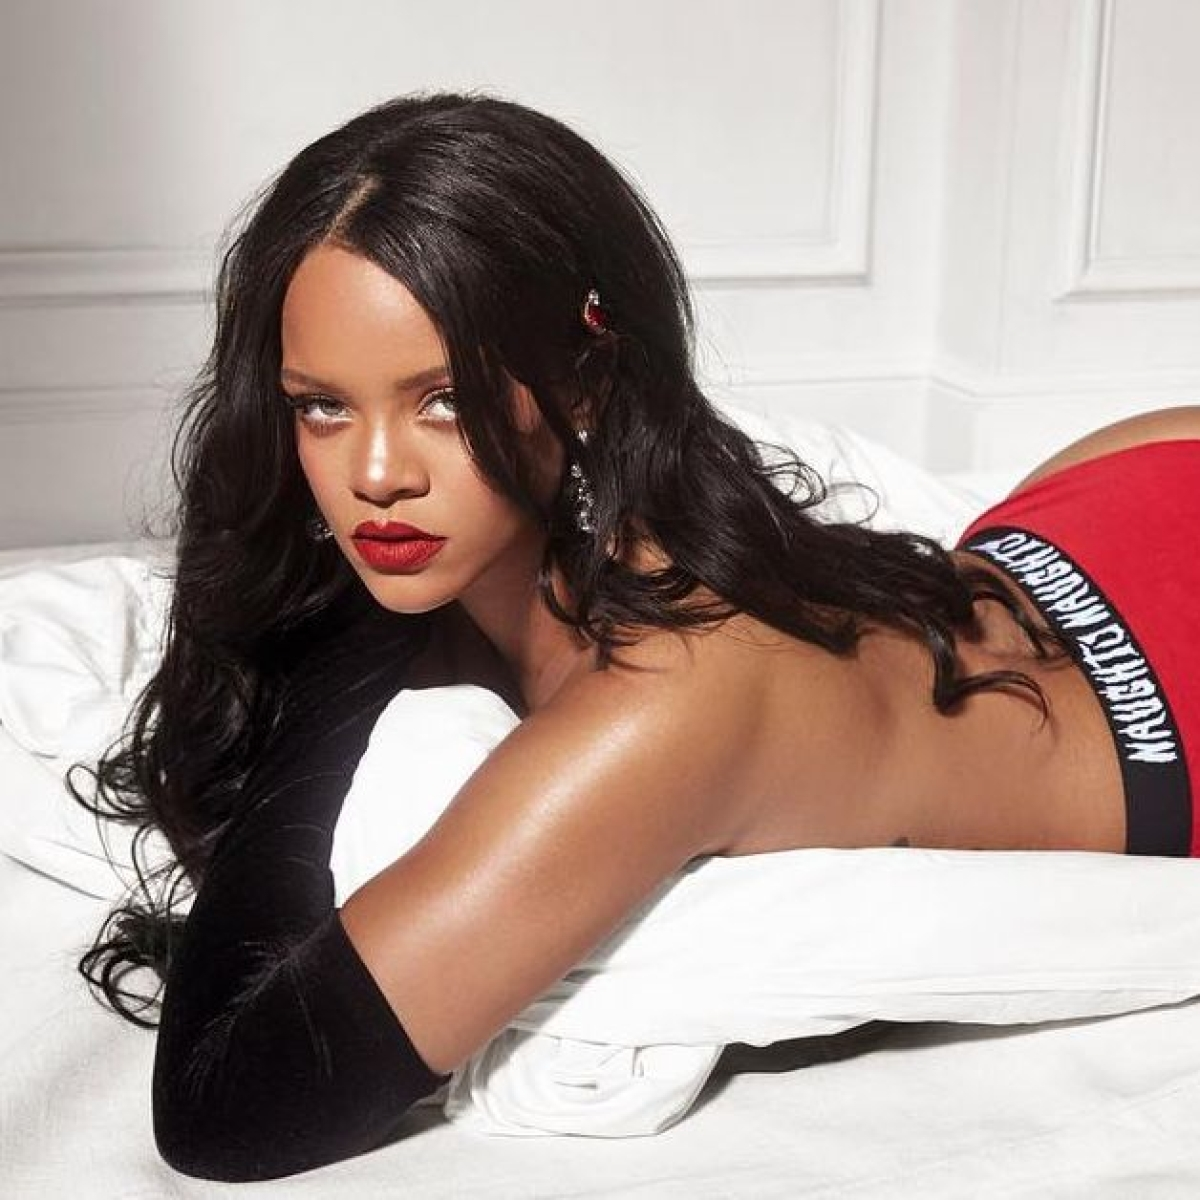 Did you know? Rihanna has a text from Bhagavad Gita tattooed on her hip